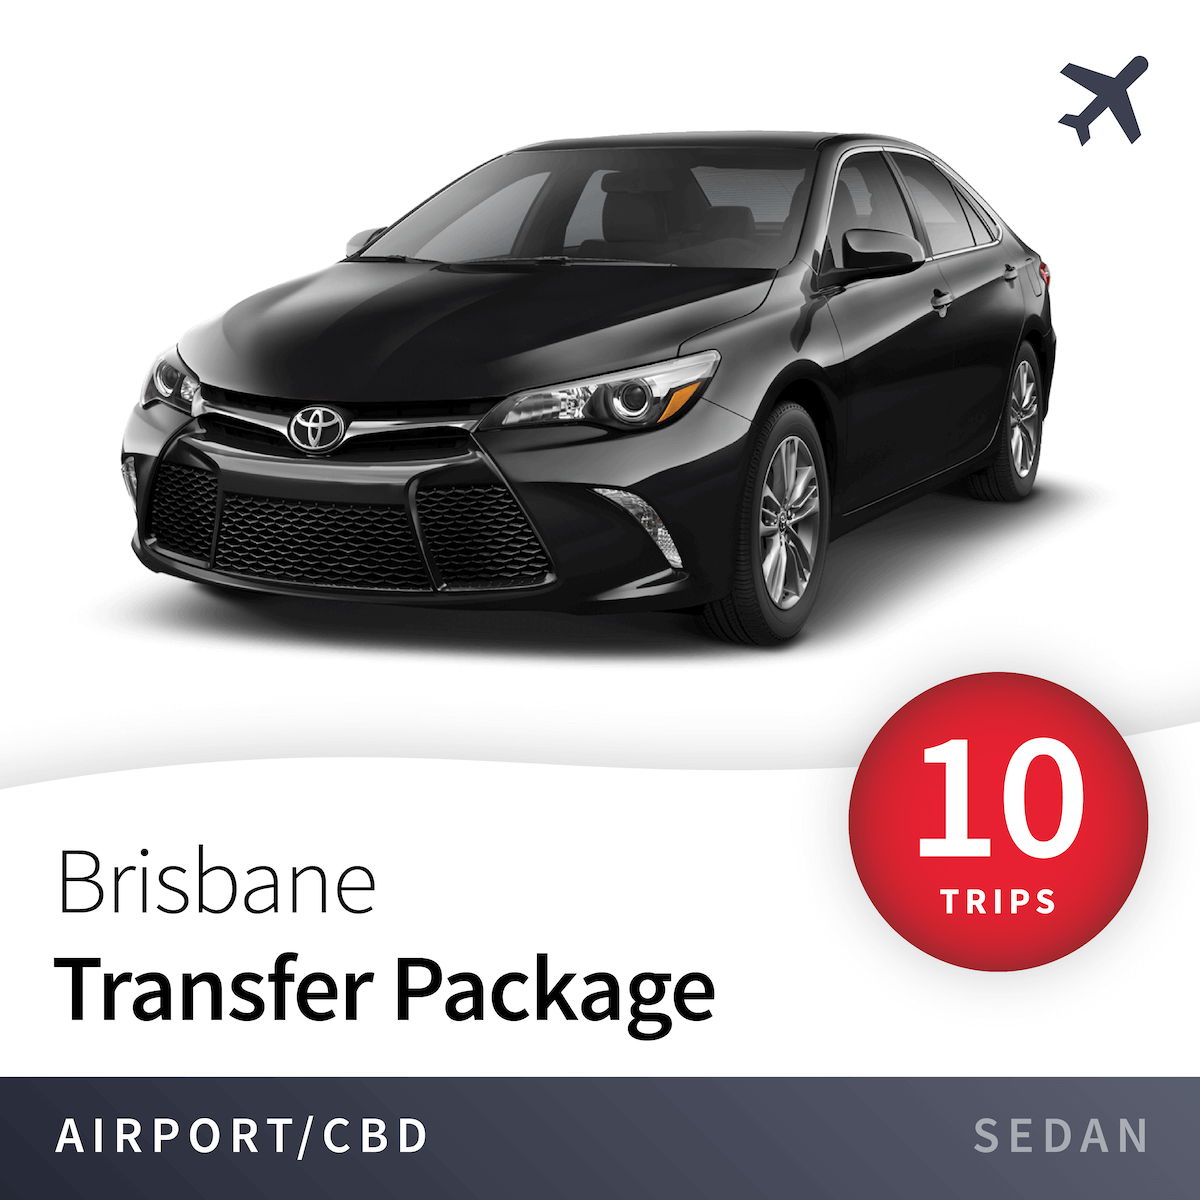 Brisbane Airport Transfer Package - Sedan (10 Trips) 17